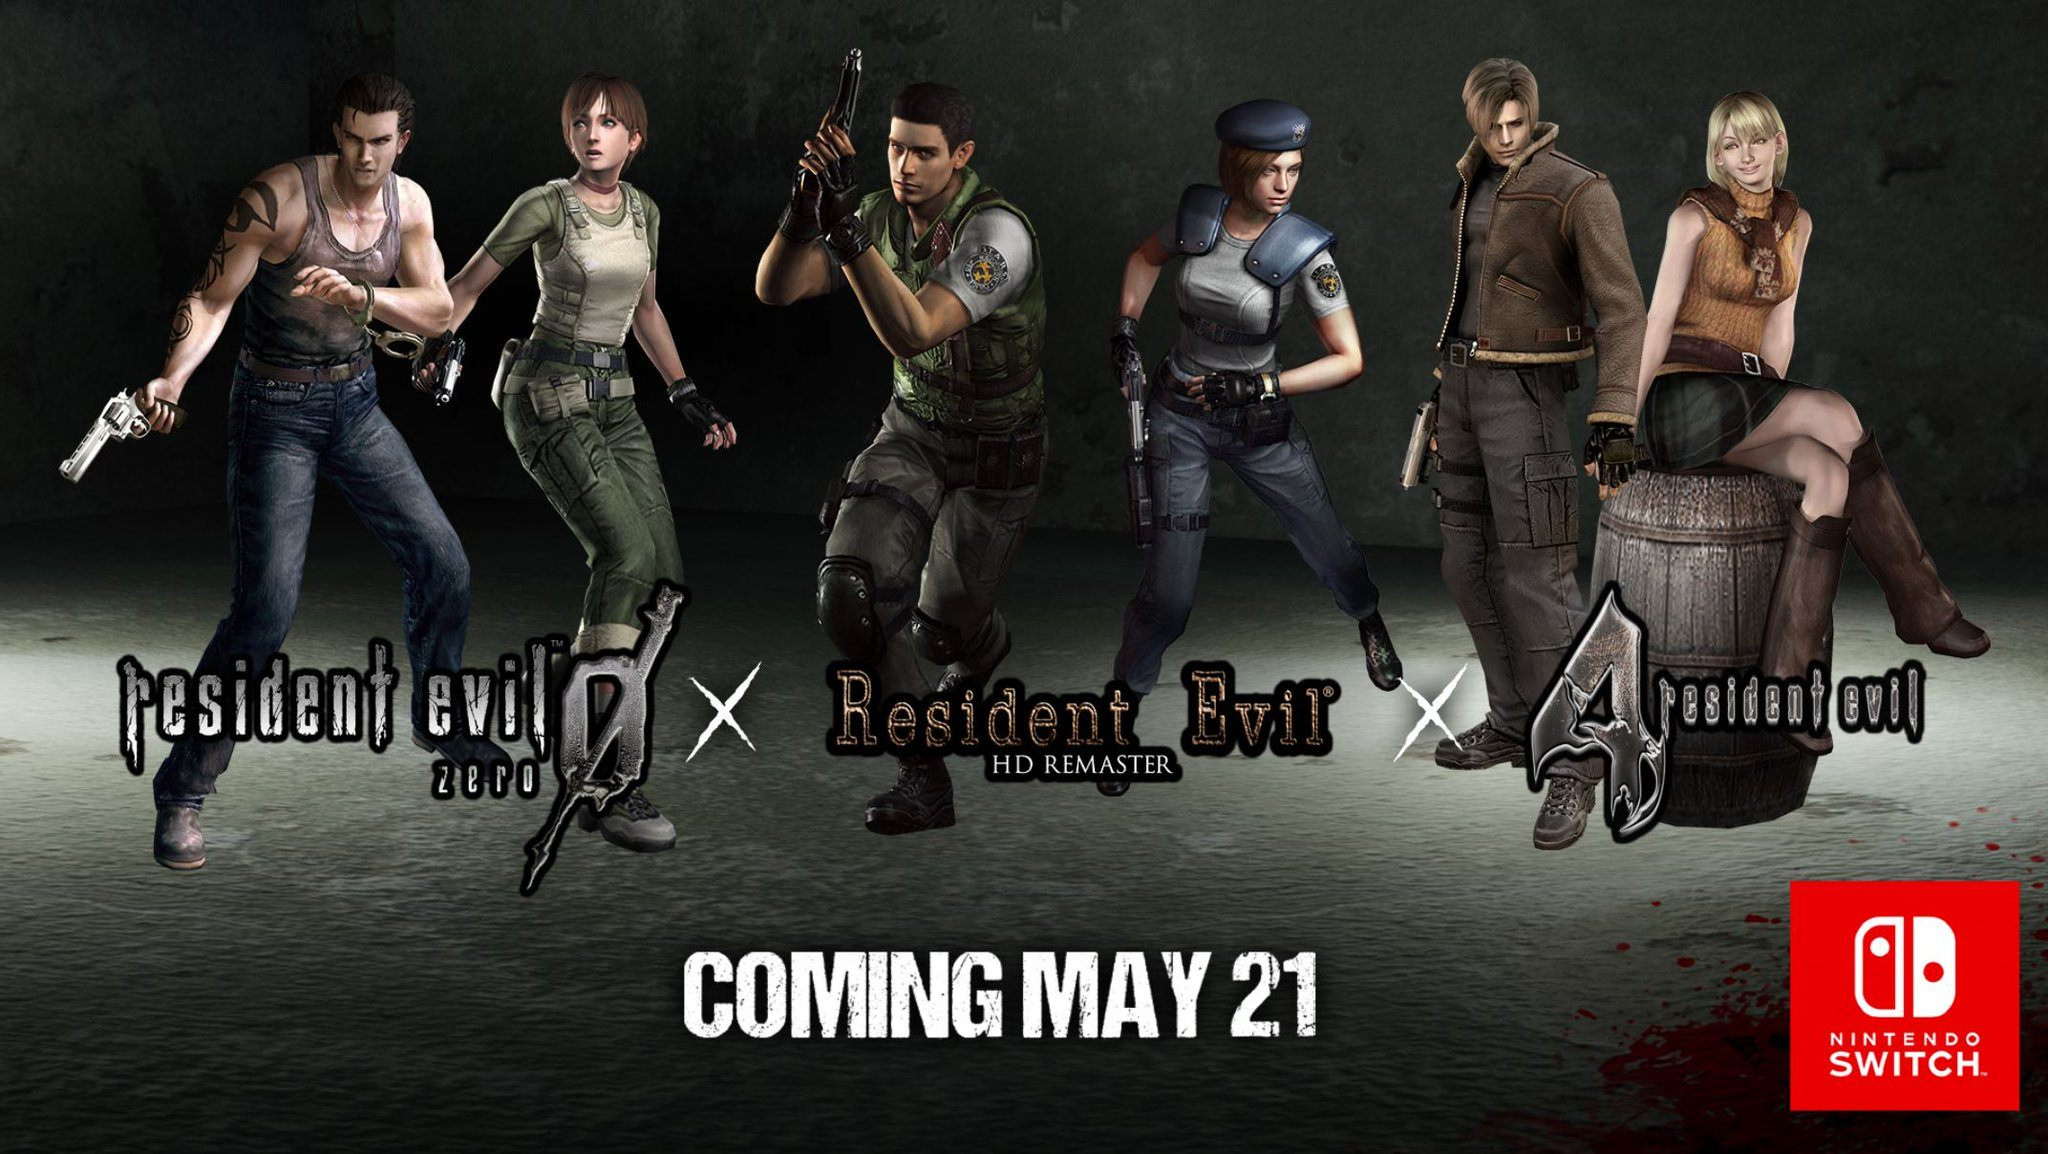 Resident Evil 0 HD Remaster 4 origins collection physical copy releaste date retail